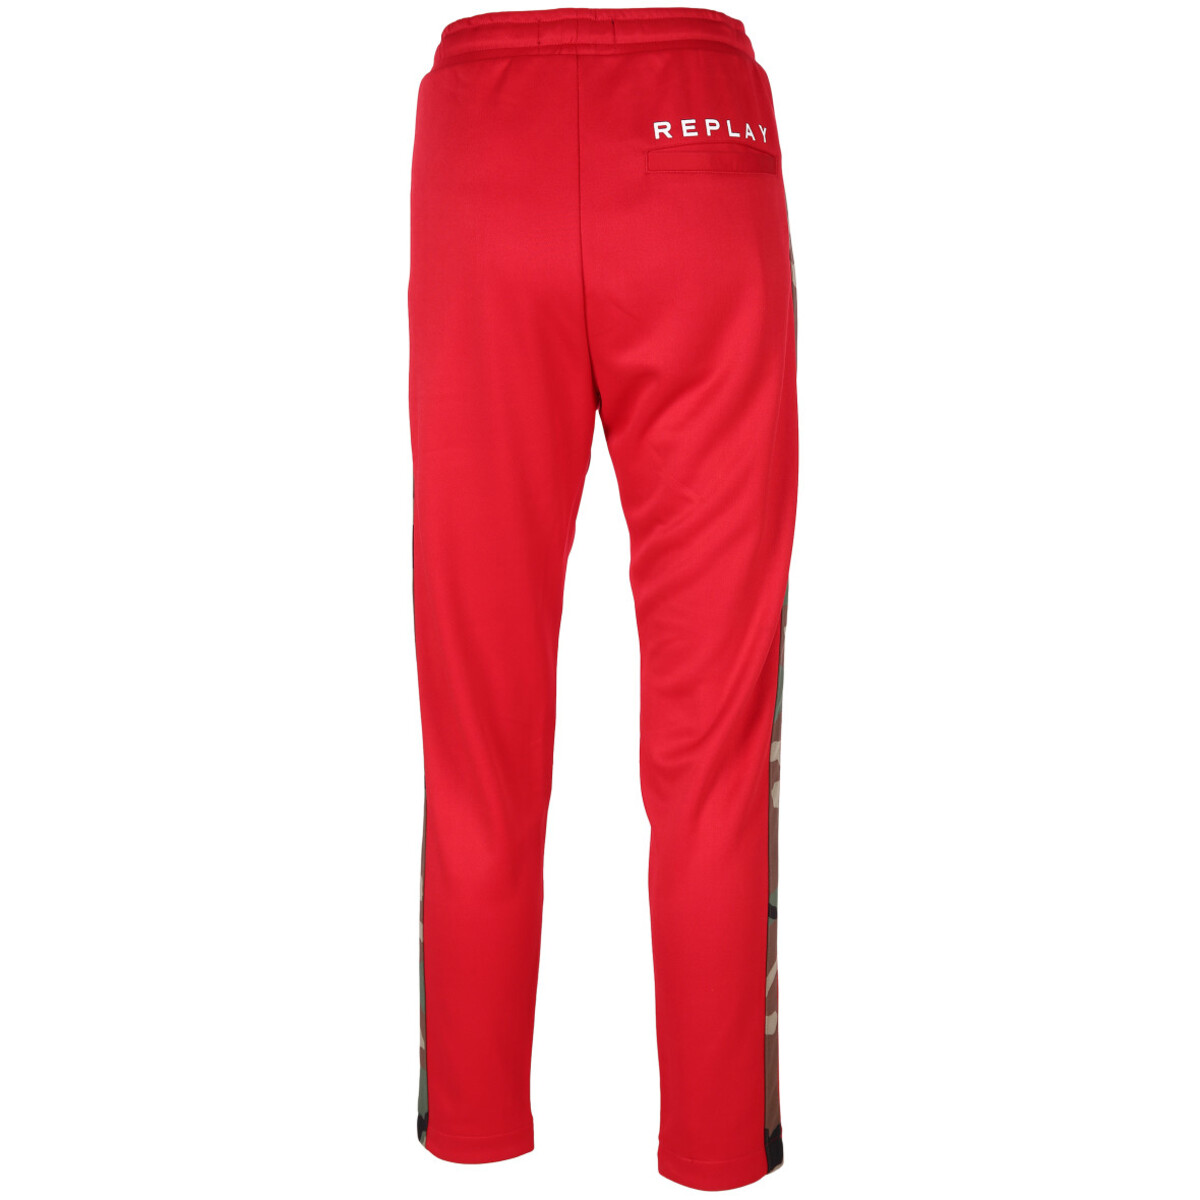 Bild 2 von Herren Replay Sweatpants